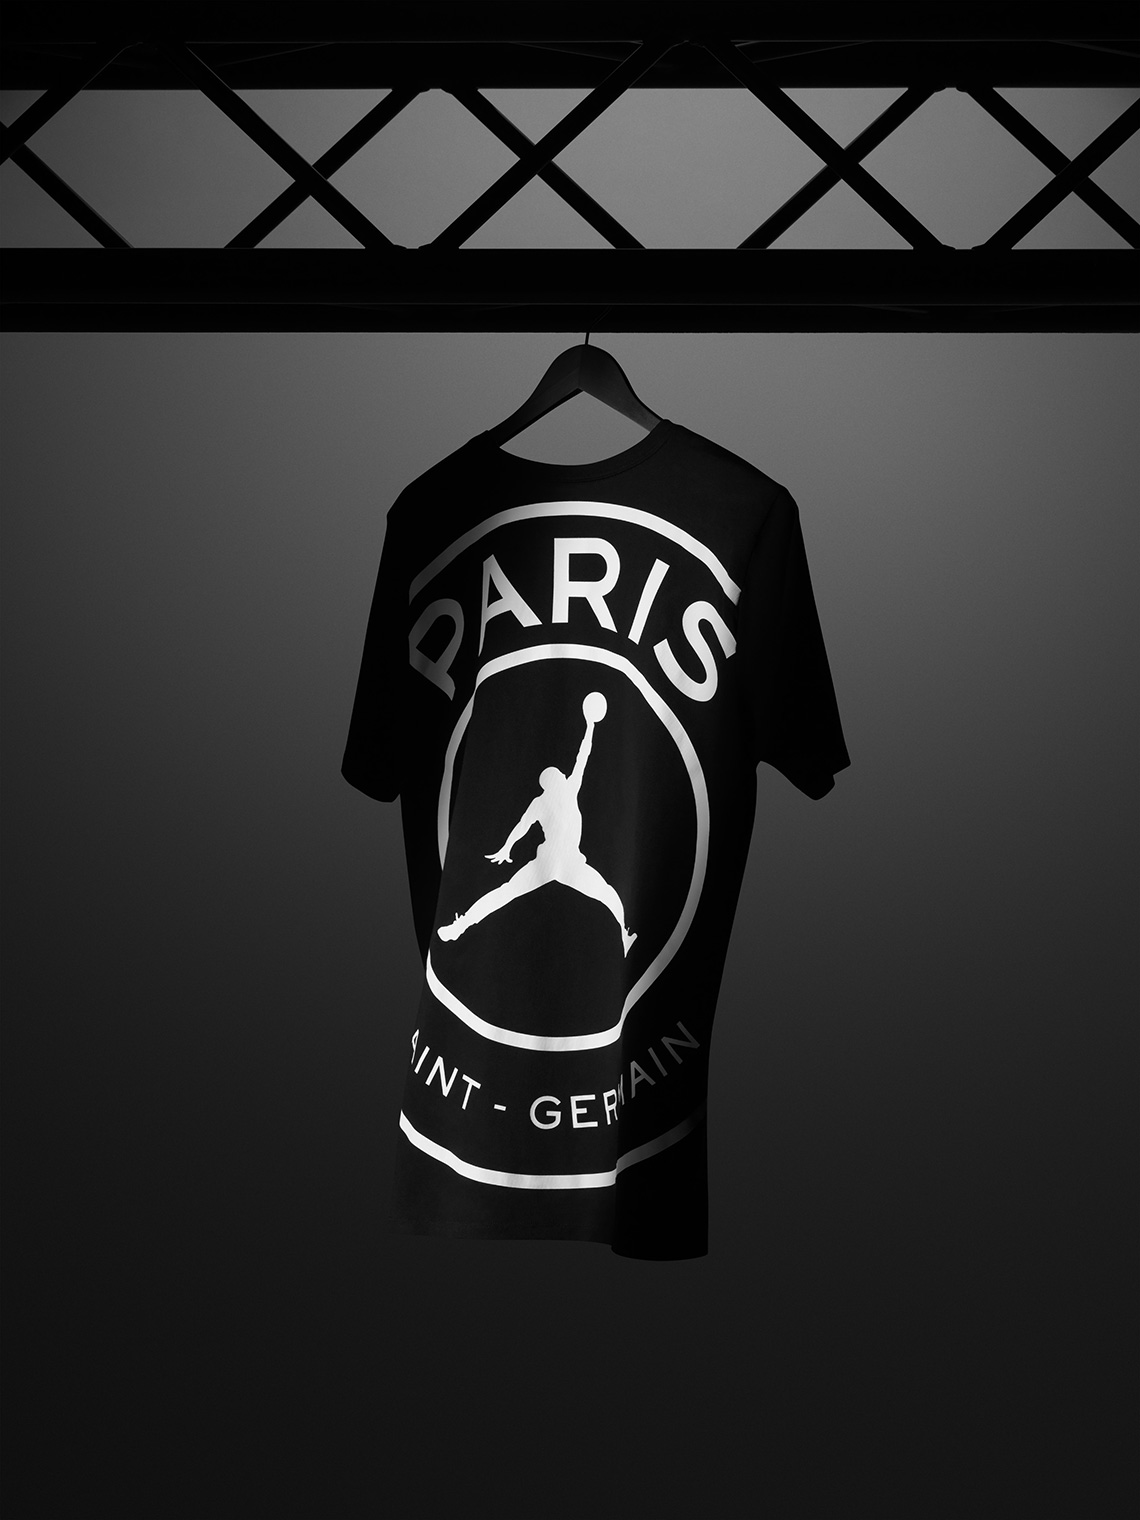 Jordan 5 Psg Paris Saint Germain Where To Buy Sneakernews Com